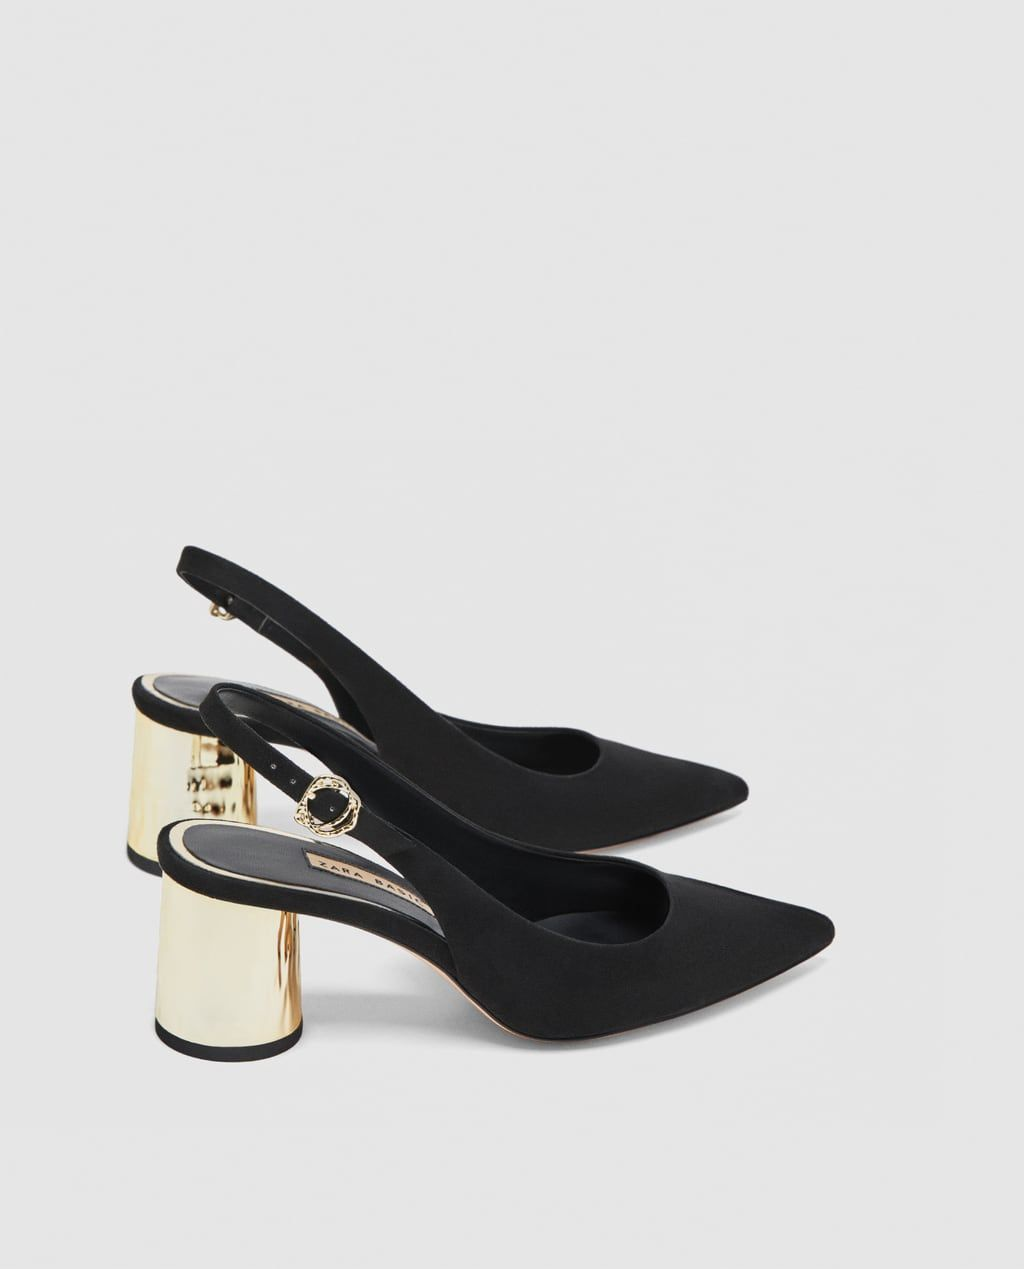 5726ed7ea5fc2f Image 5 of MID-HEEL SLINGBACK SHOES WITH LAMINATED HEELS from Zara ...